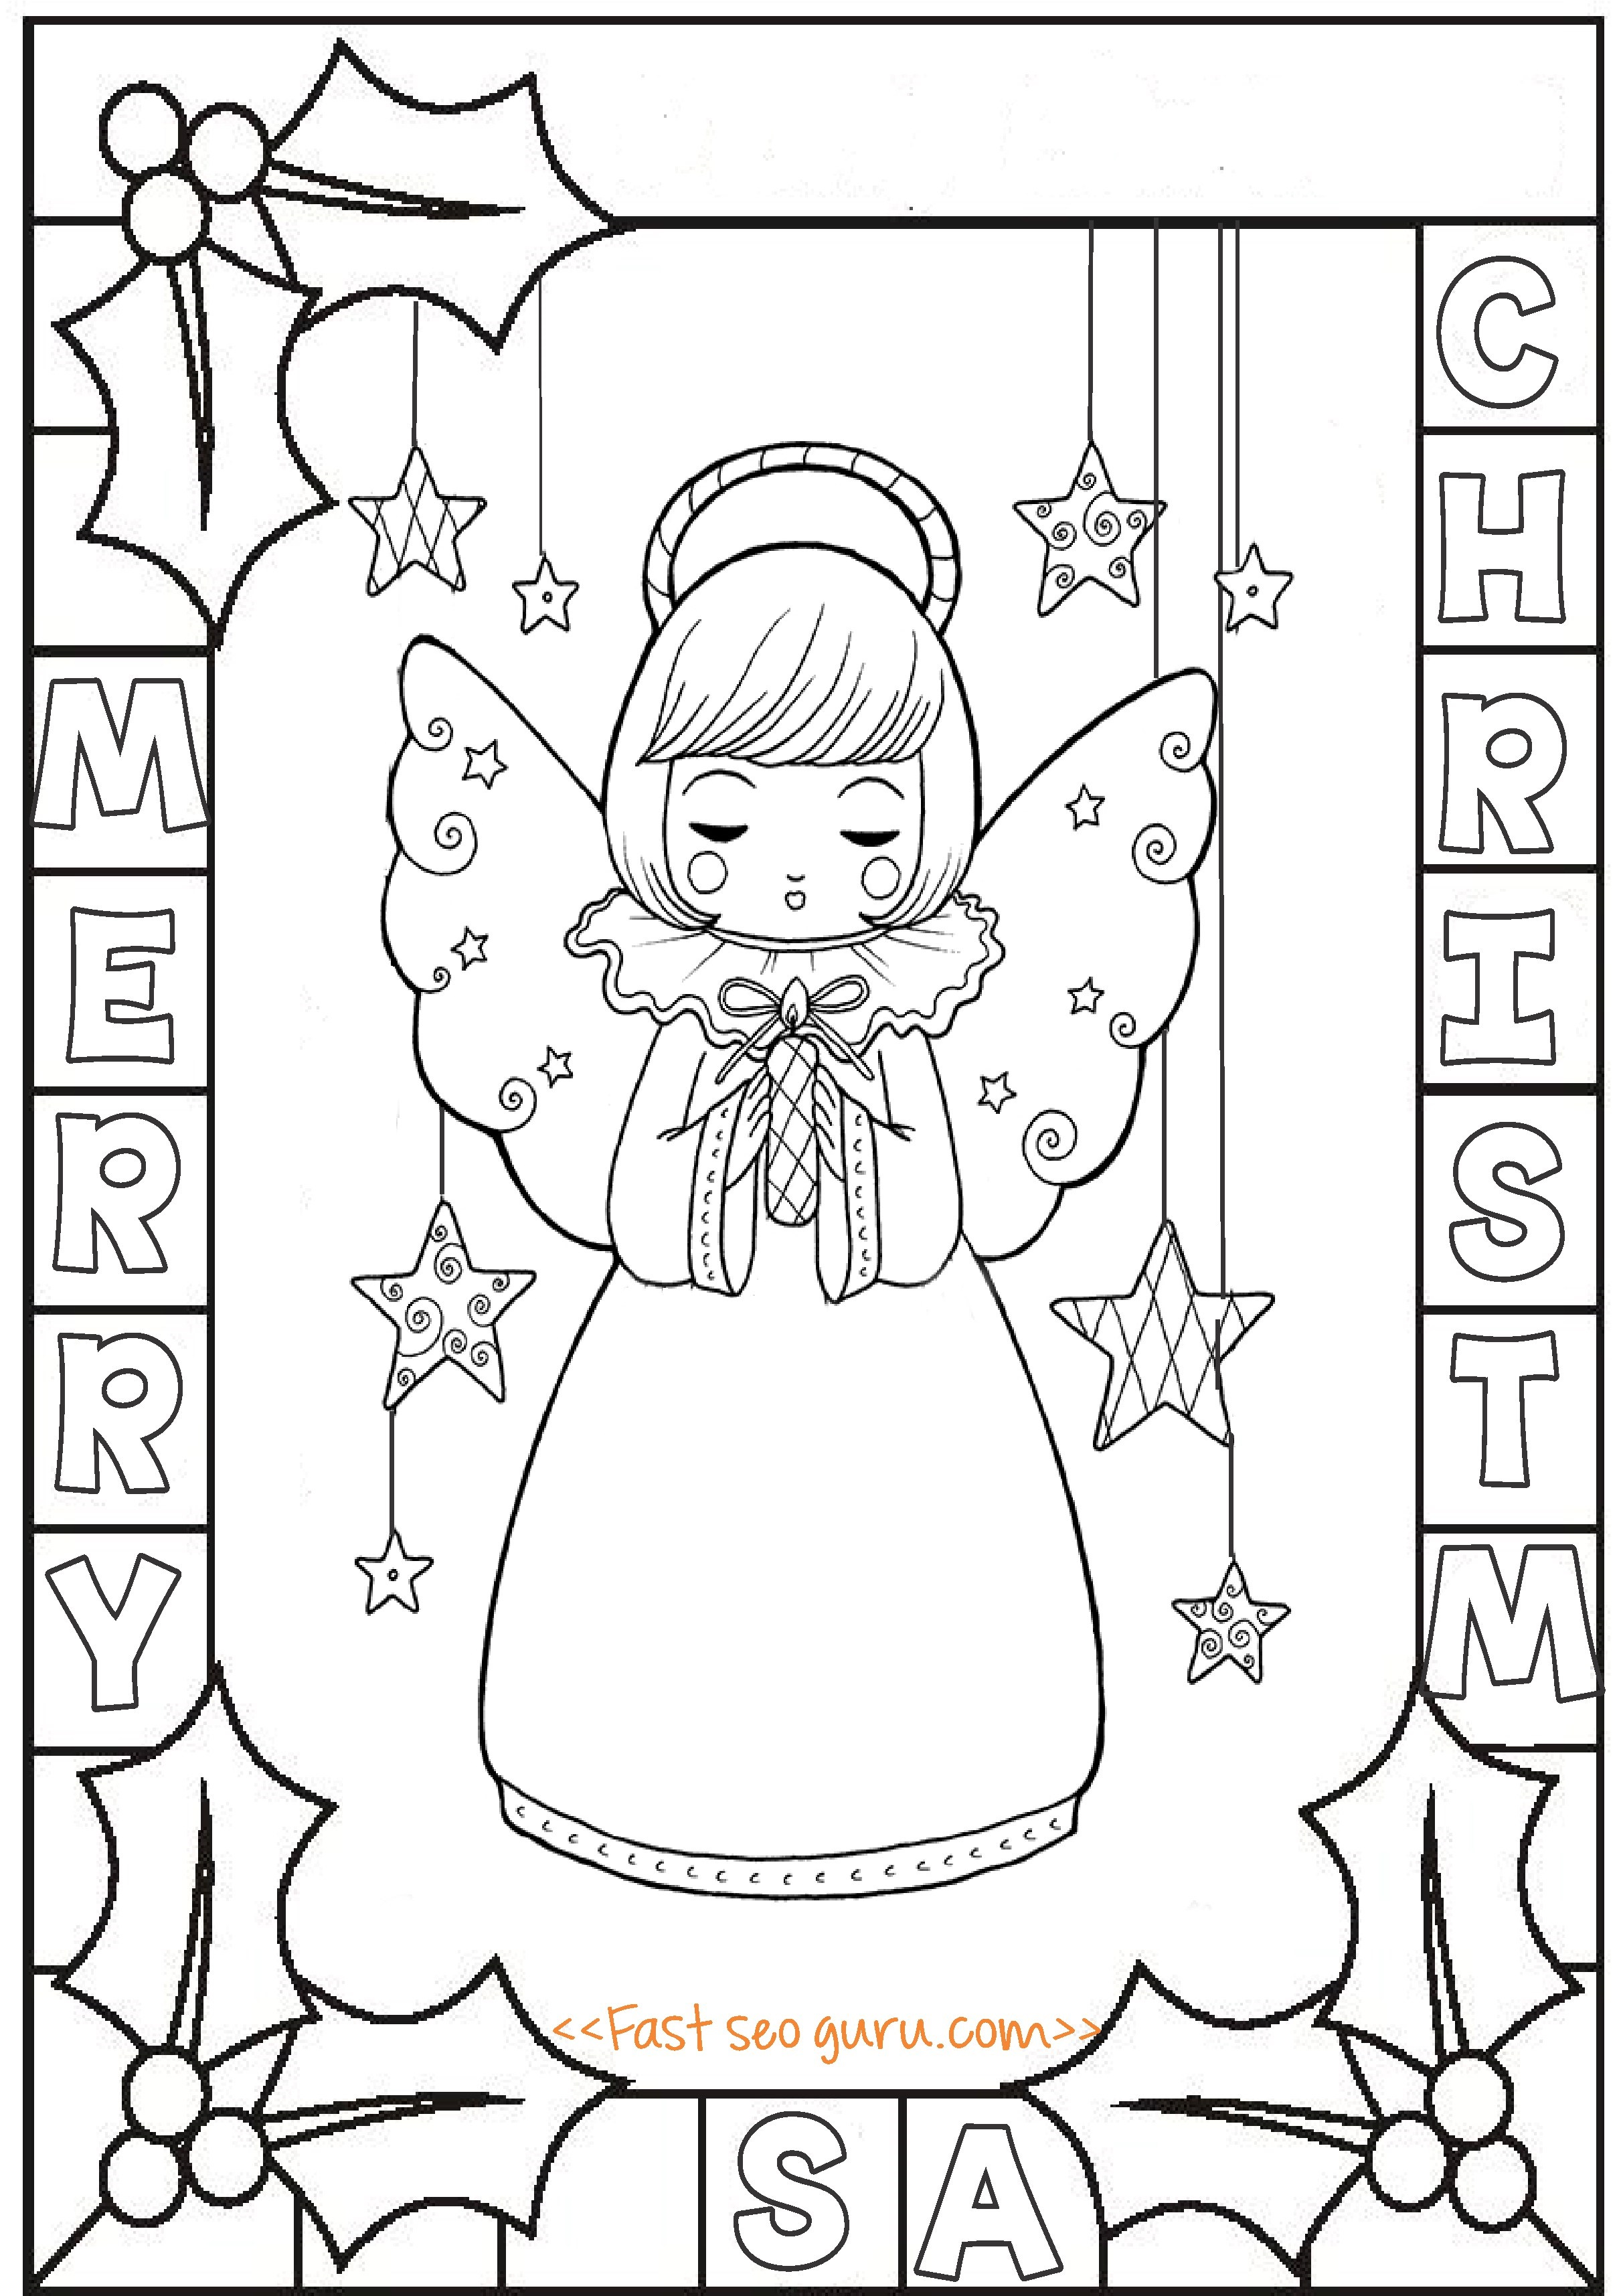 Holly printable coloring pages | 3430x2419